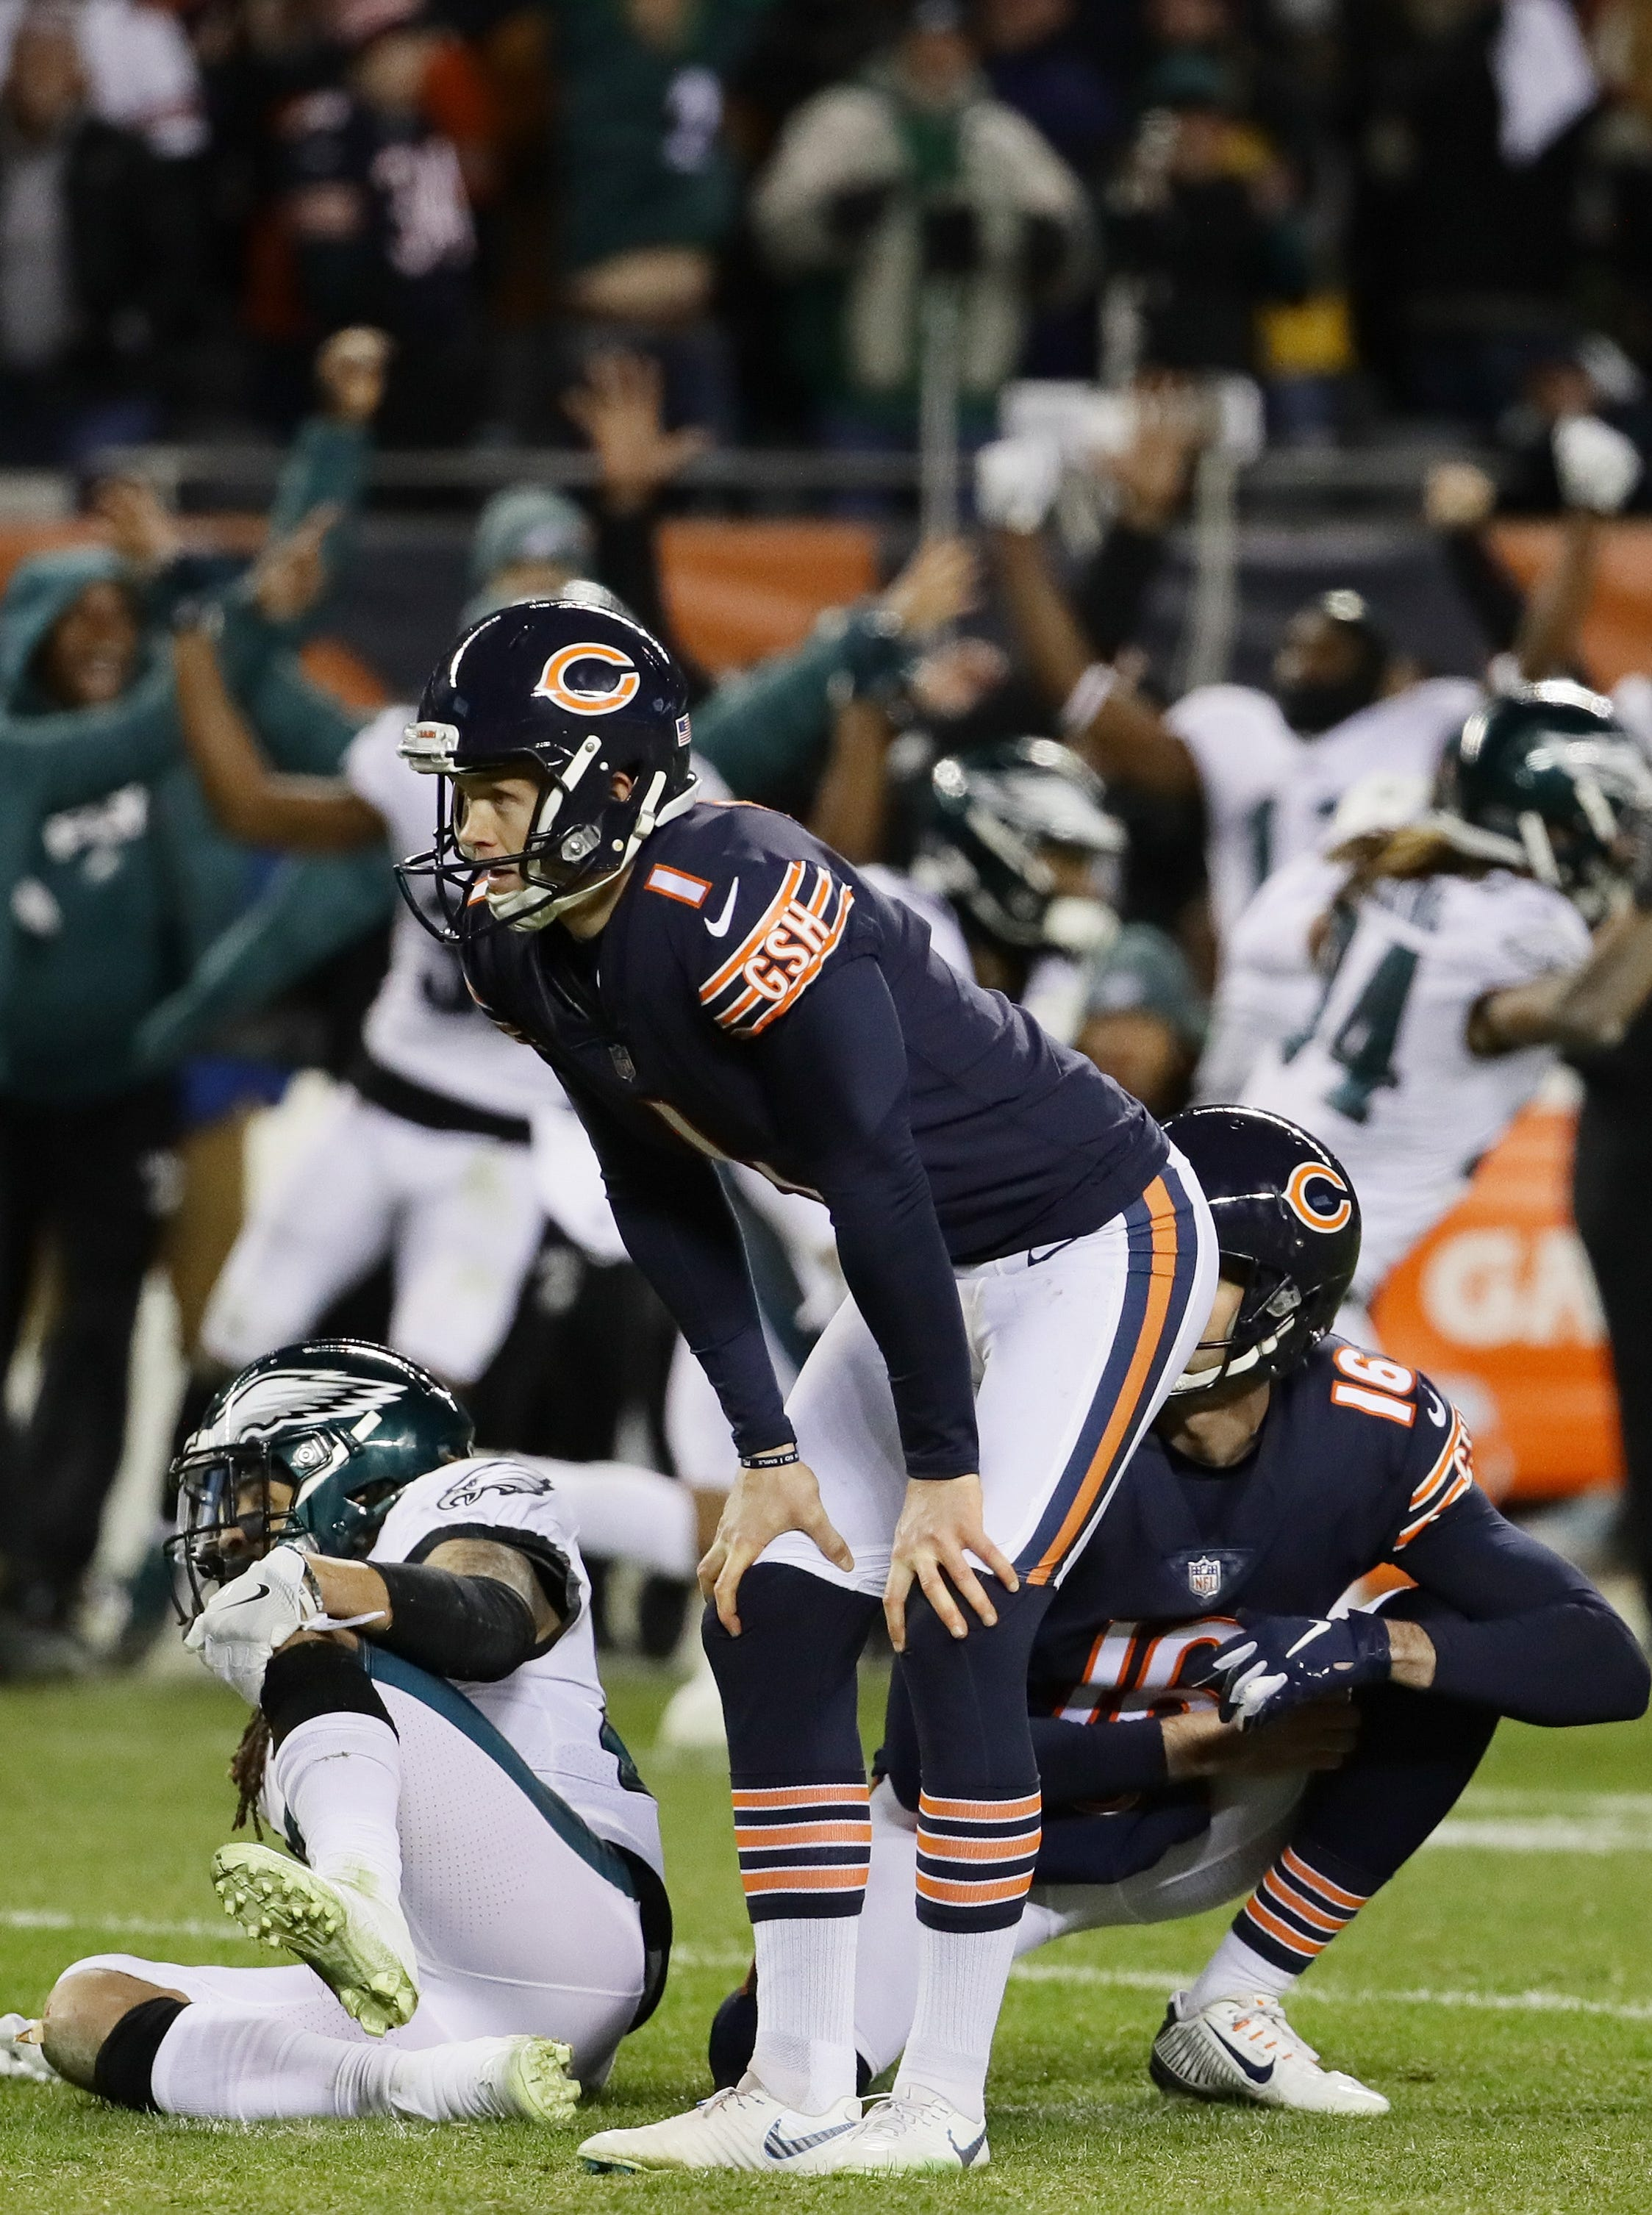 Bears' Cody Parkey, center, missed a winning kick against the Eagles.